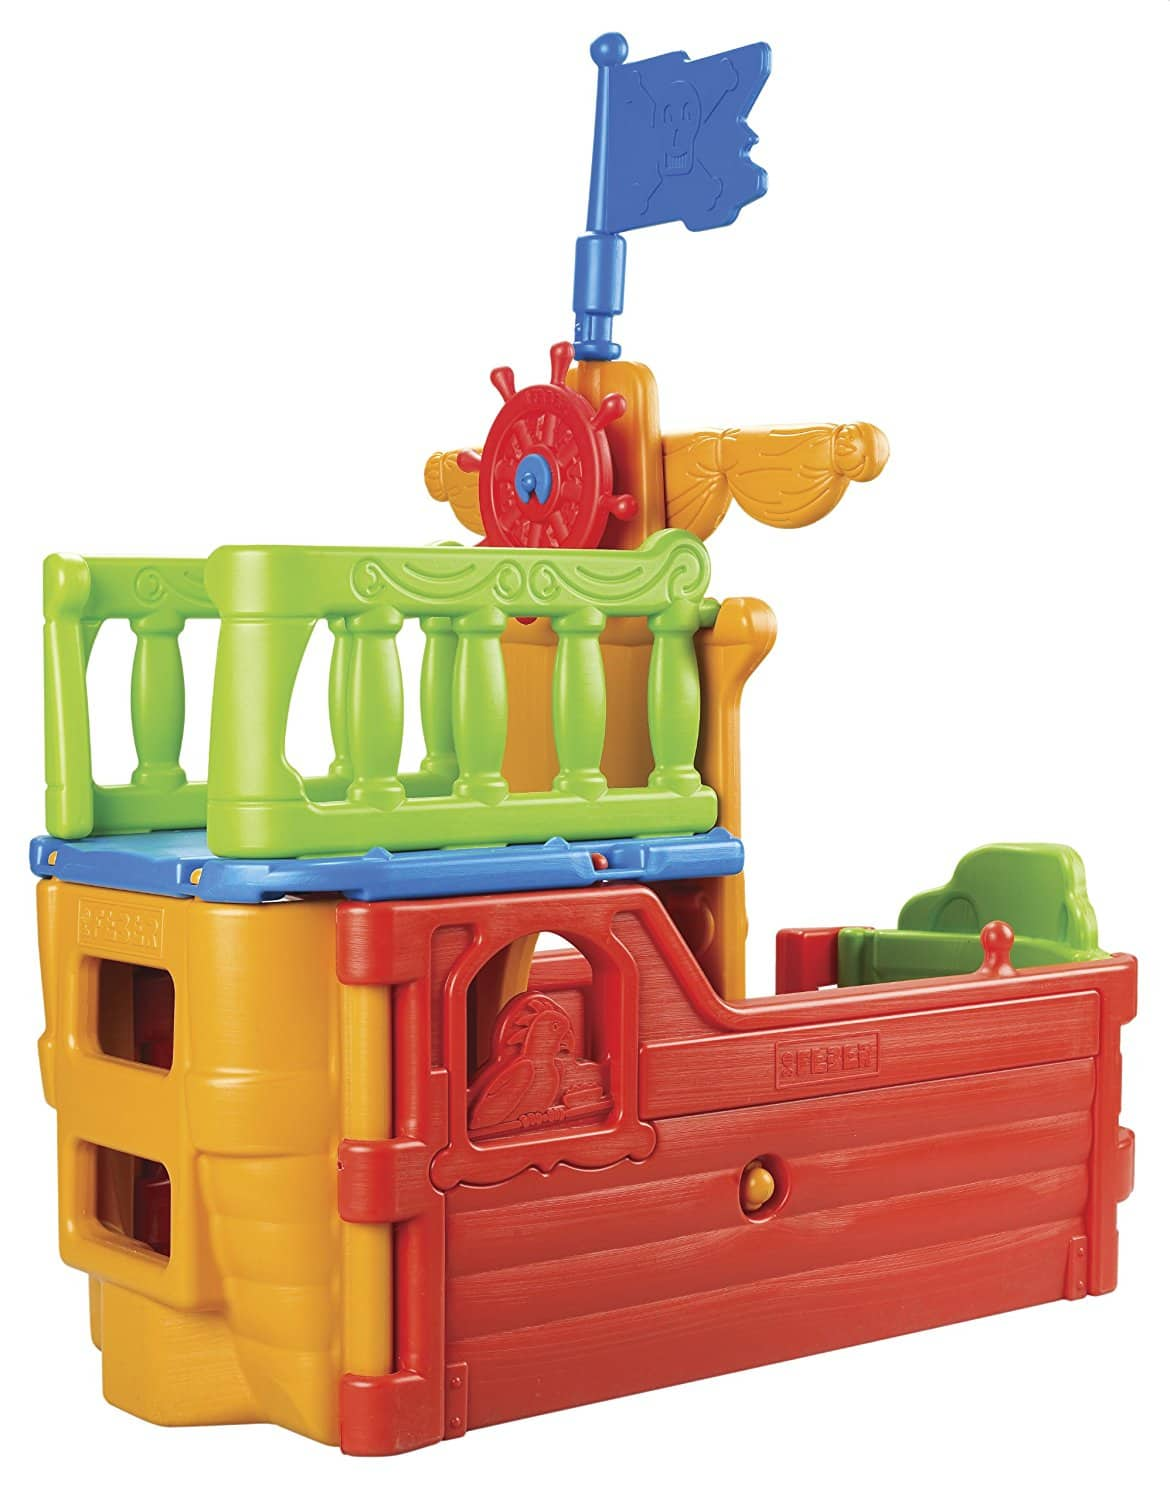 ECR4Kids Indoor/Outdoor Buccaneer Play Boat with Pirate Flag $135